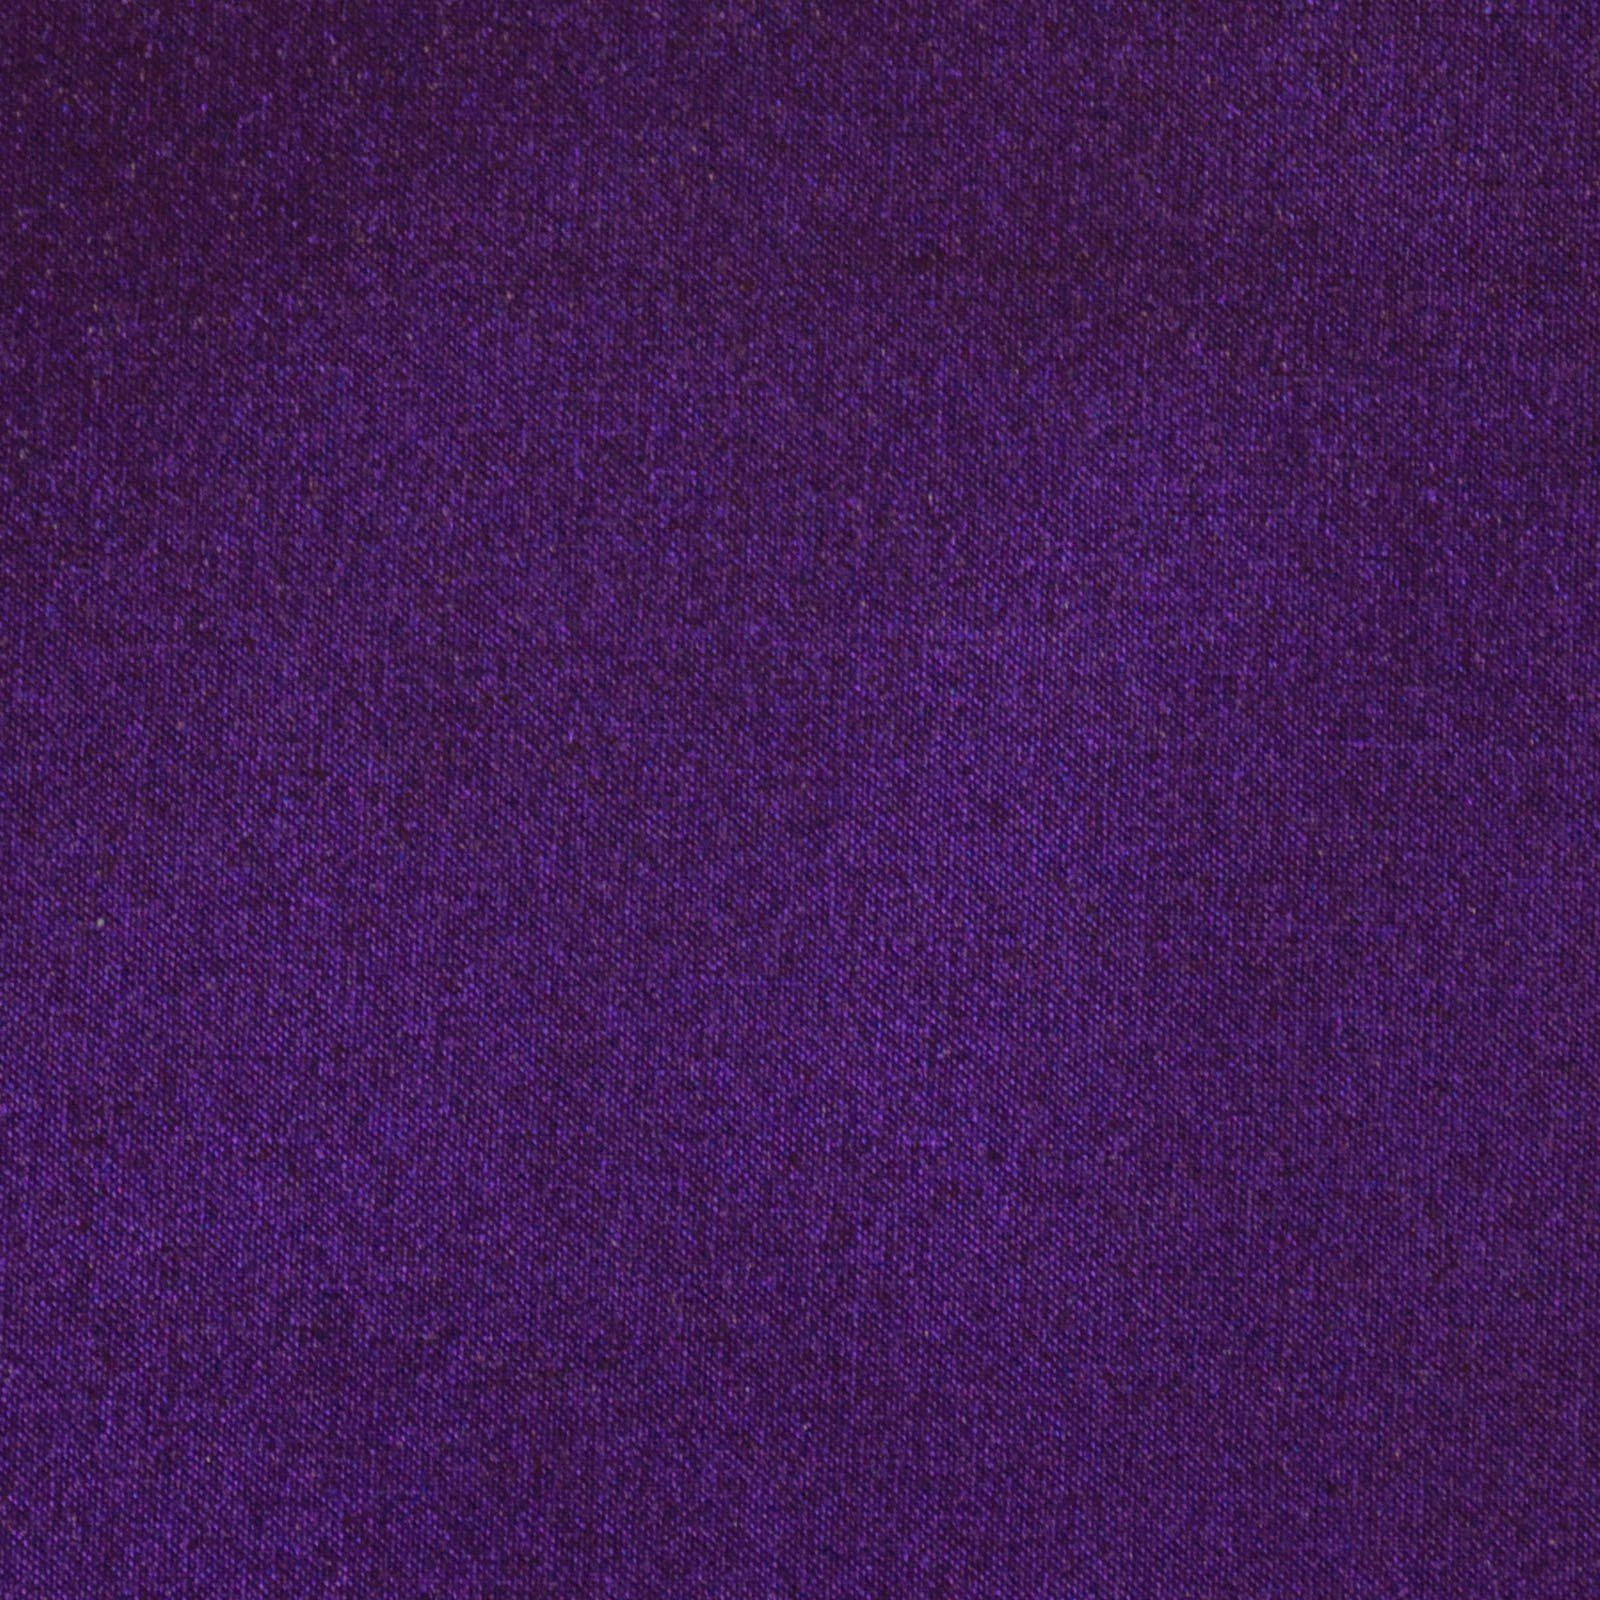 Glitz - Purple / Black<br/>Maywood Studio GLI-PUB